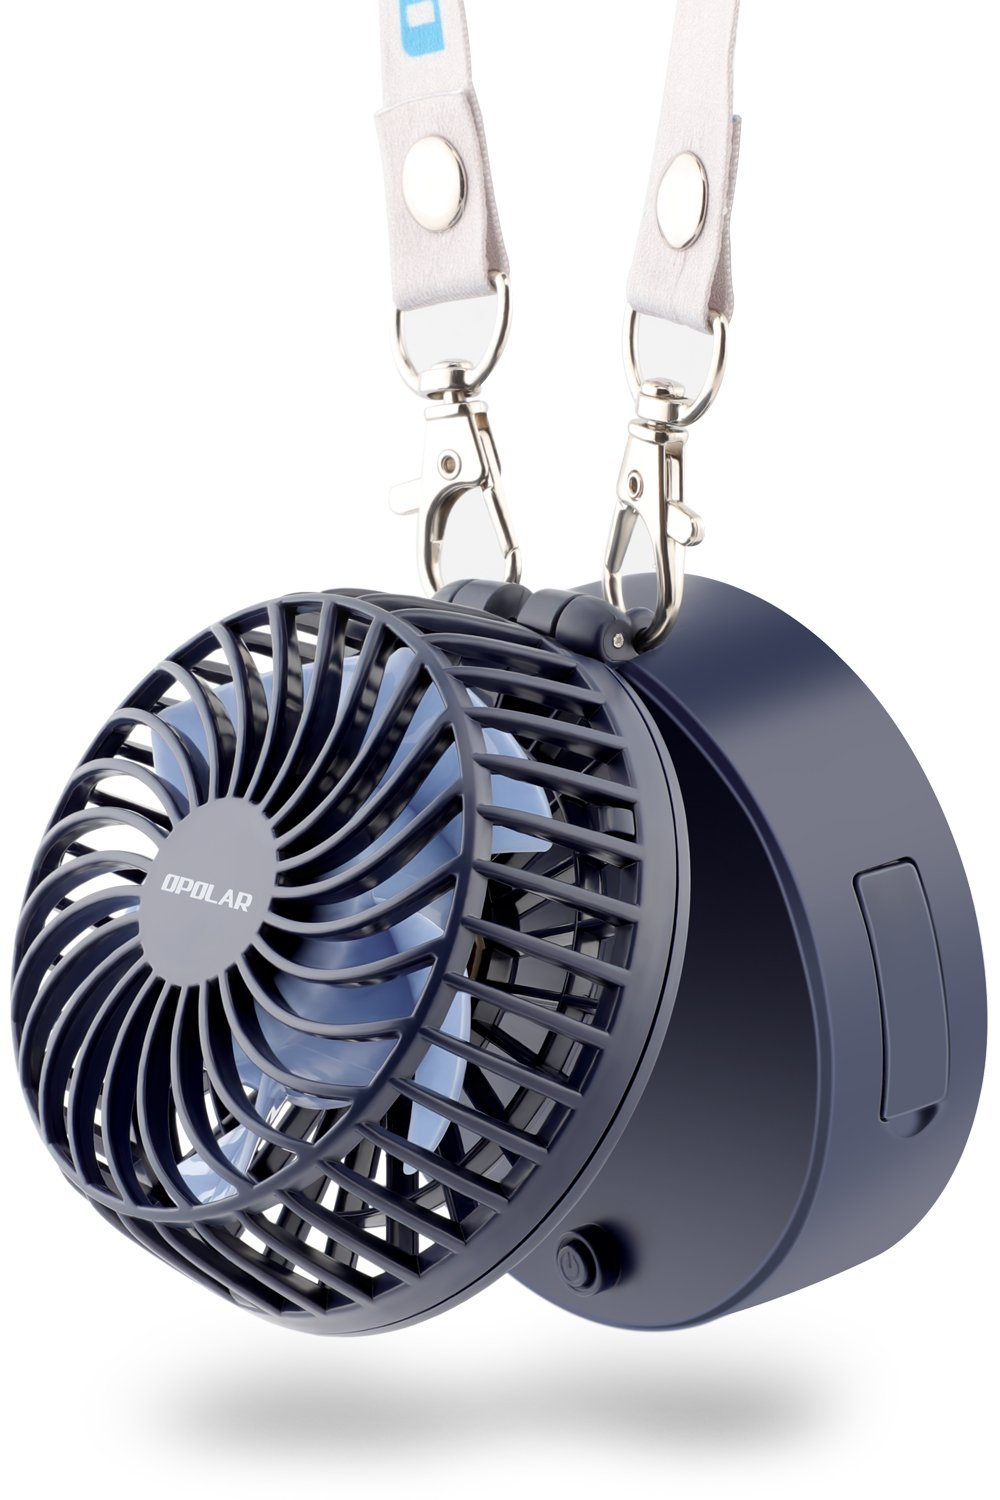 OPOLAR Necklace Fan Powered by 3350mAh Battery, Rechargeable Personal Fan, 3 Setting, 7-20H Working Hours,180° Rotating Free Adjustment for Camping/Outdoors/Travel